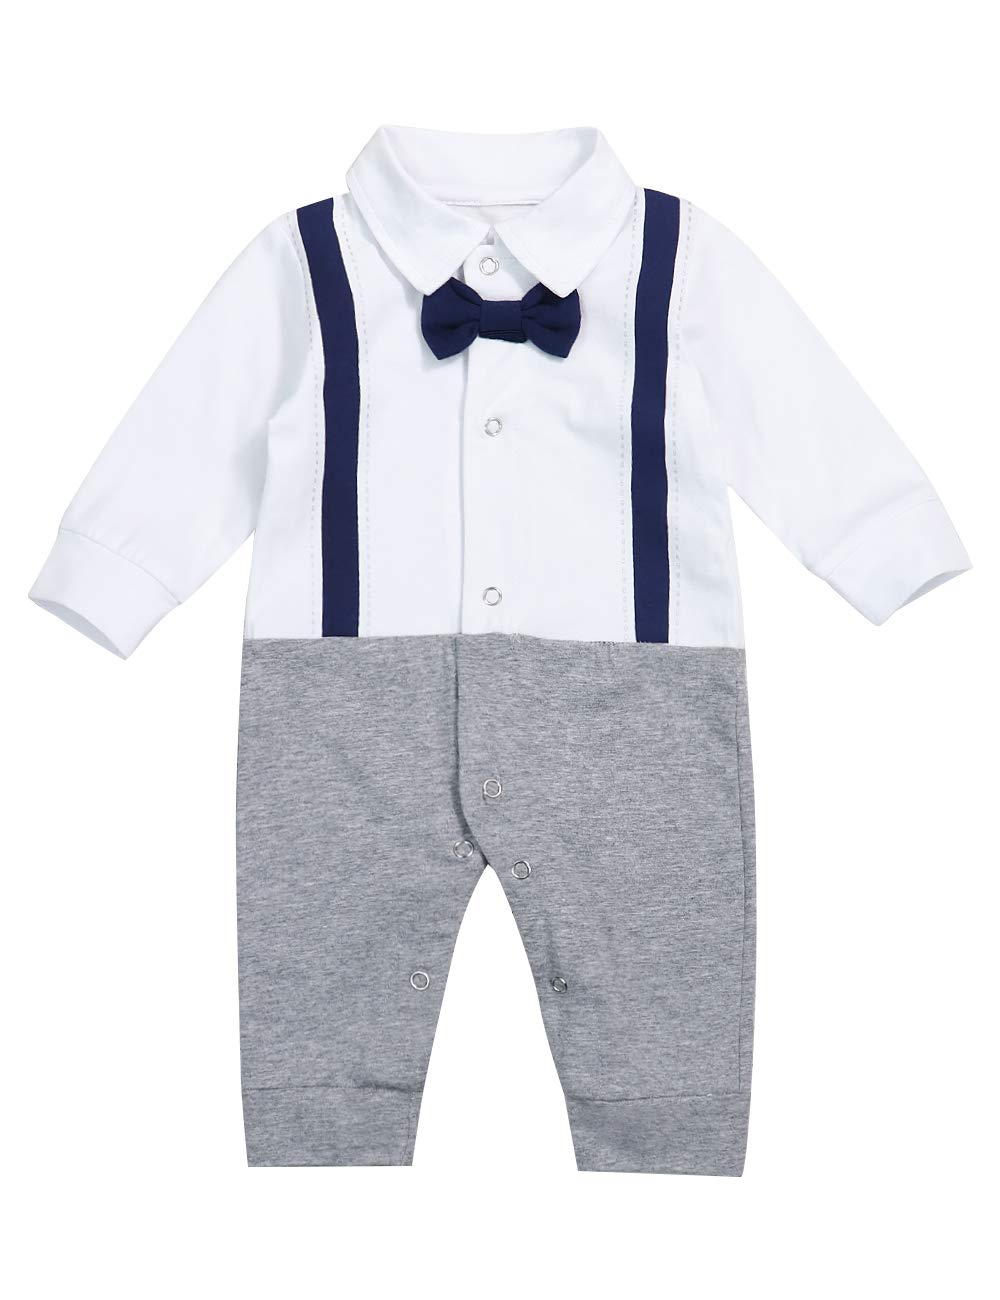 Yiner Newborn Baby Boy Gentleman Clothes Tuxedo Bow Tie Romper Jumpsuit Formal Outfits